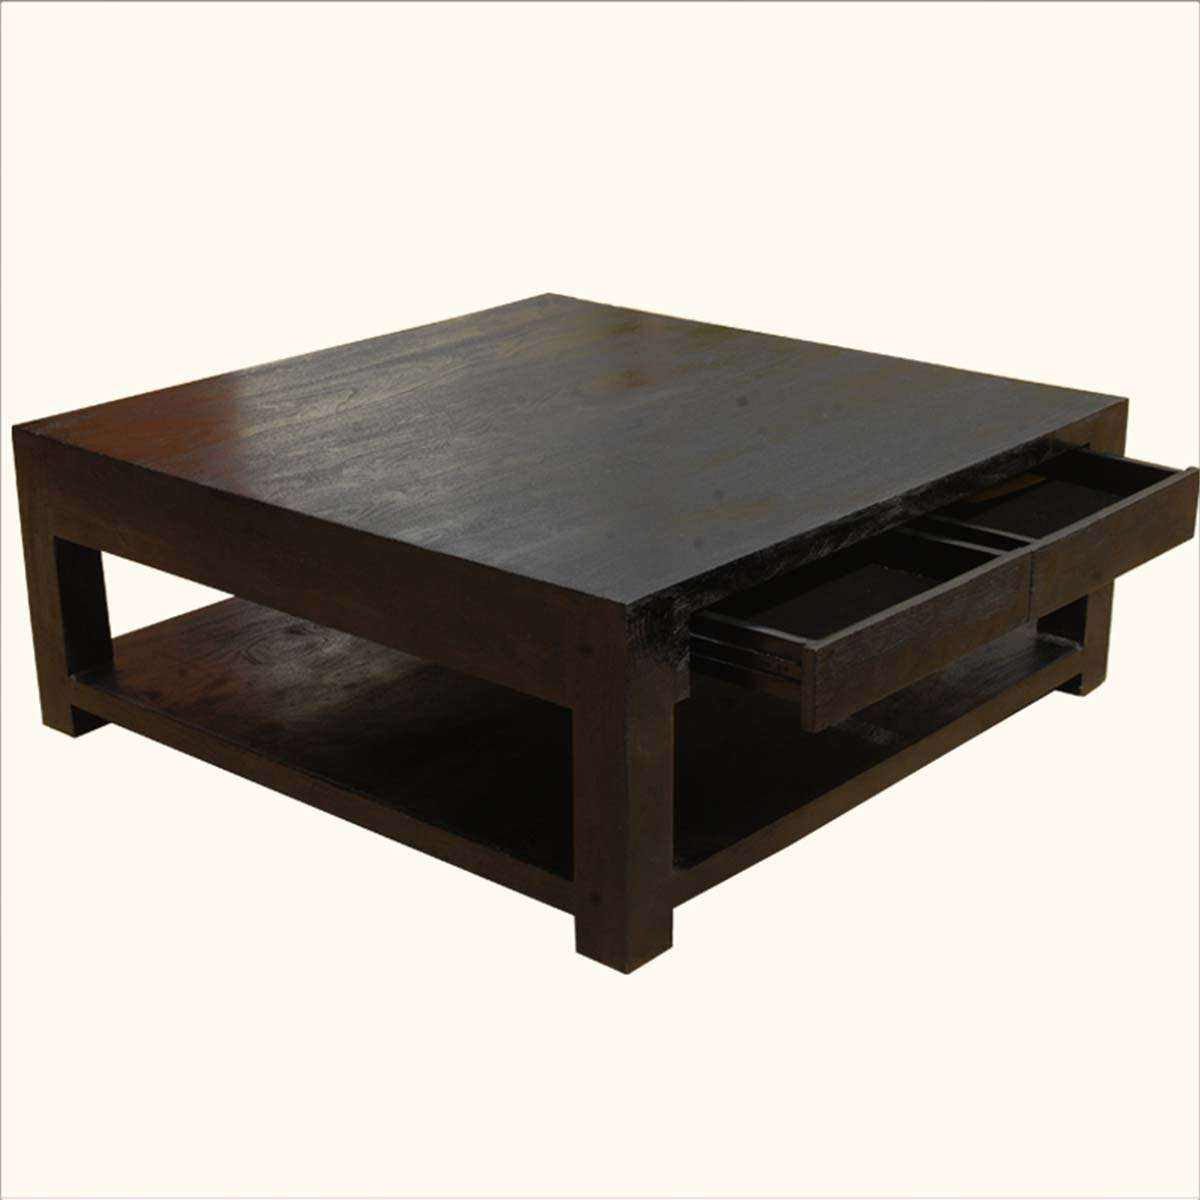 Excellent Square Coffee Tables With Storage Pictures Decoration Throughout Recent Dark Wood Square Coffee Tables (Gallery 20 of 20)